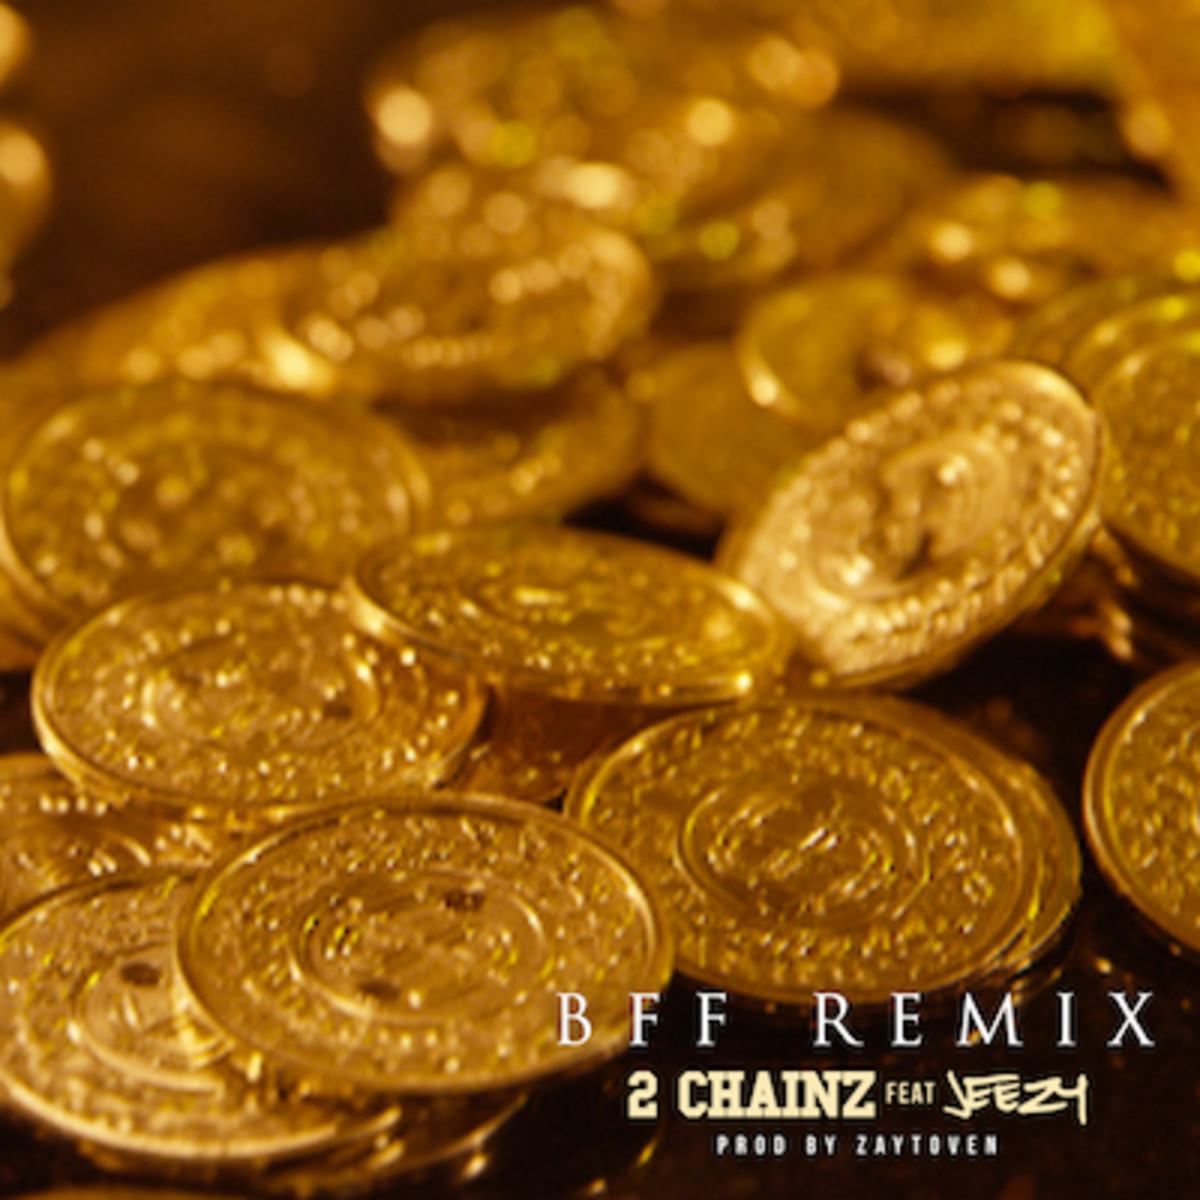 2-chainz-bff-remix.jpg